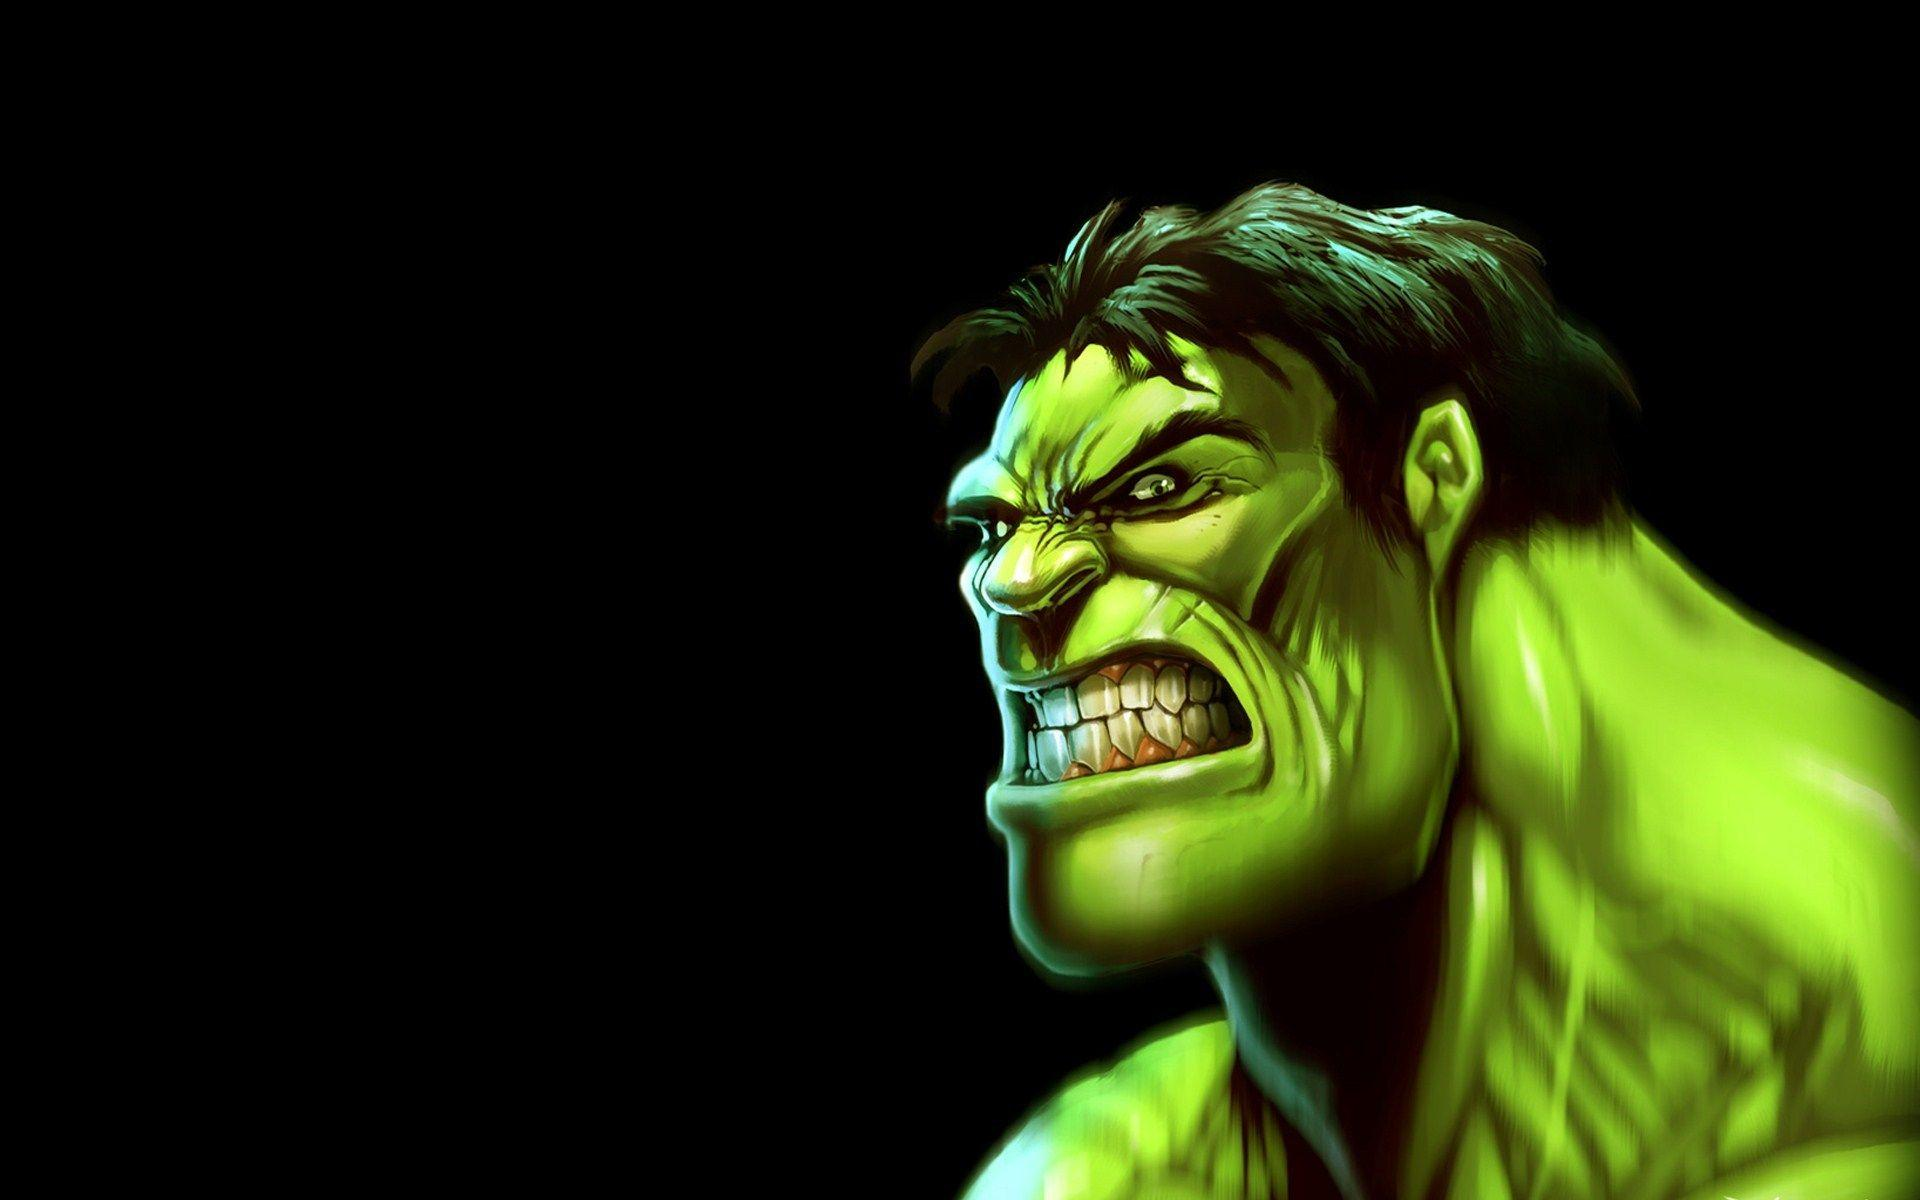 wallpapers of the day hulk 1900x1200px hulk pics